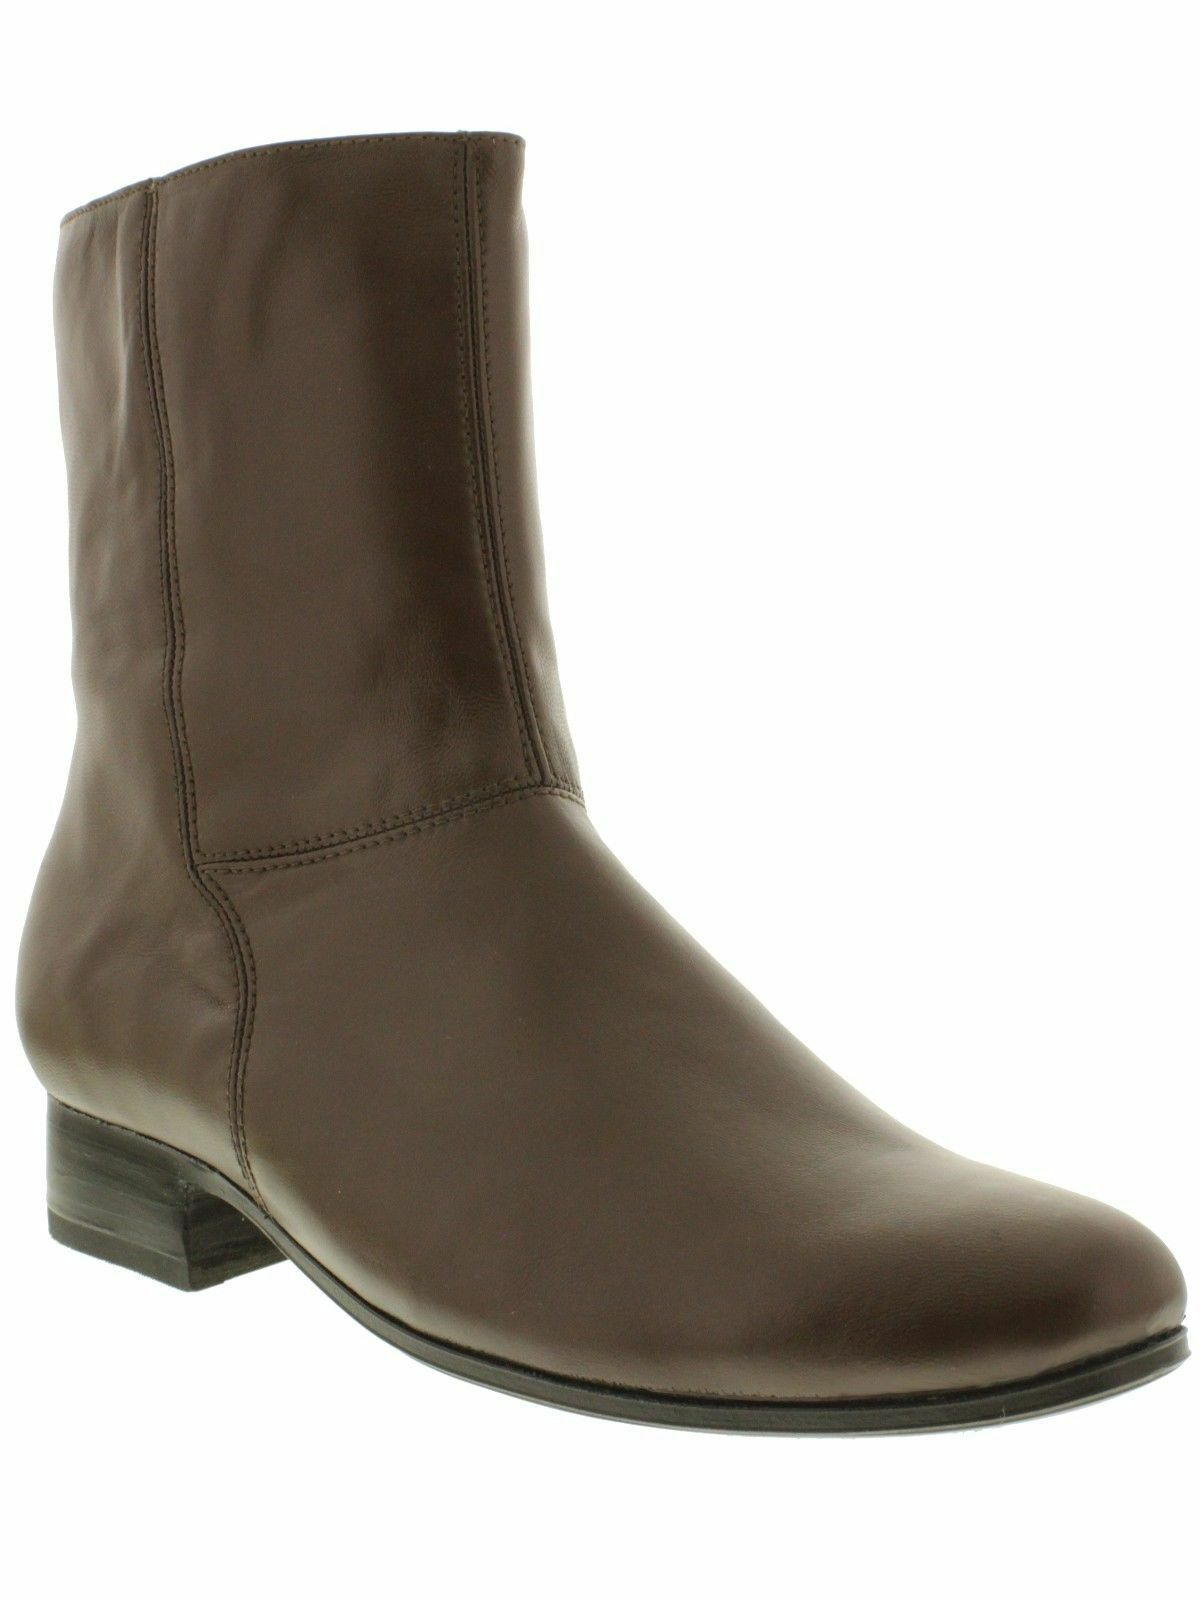 mens brown classic zip up western cowboy ankle leather boots rodeo riding new